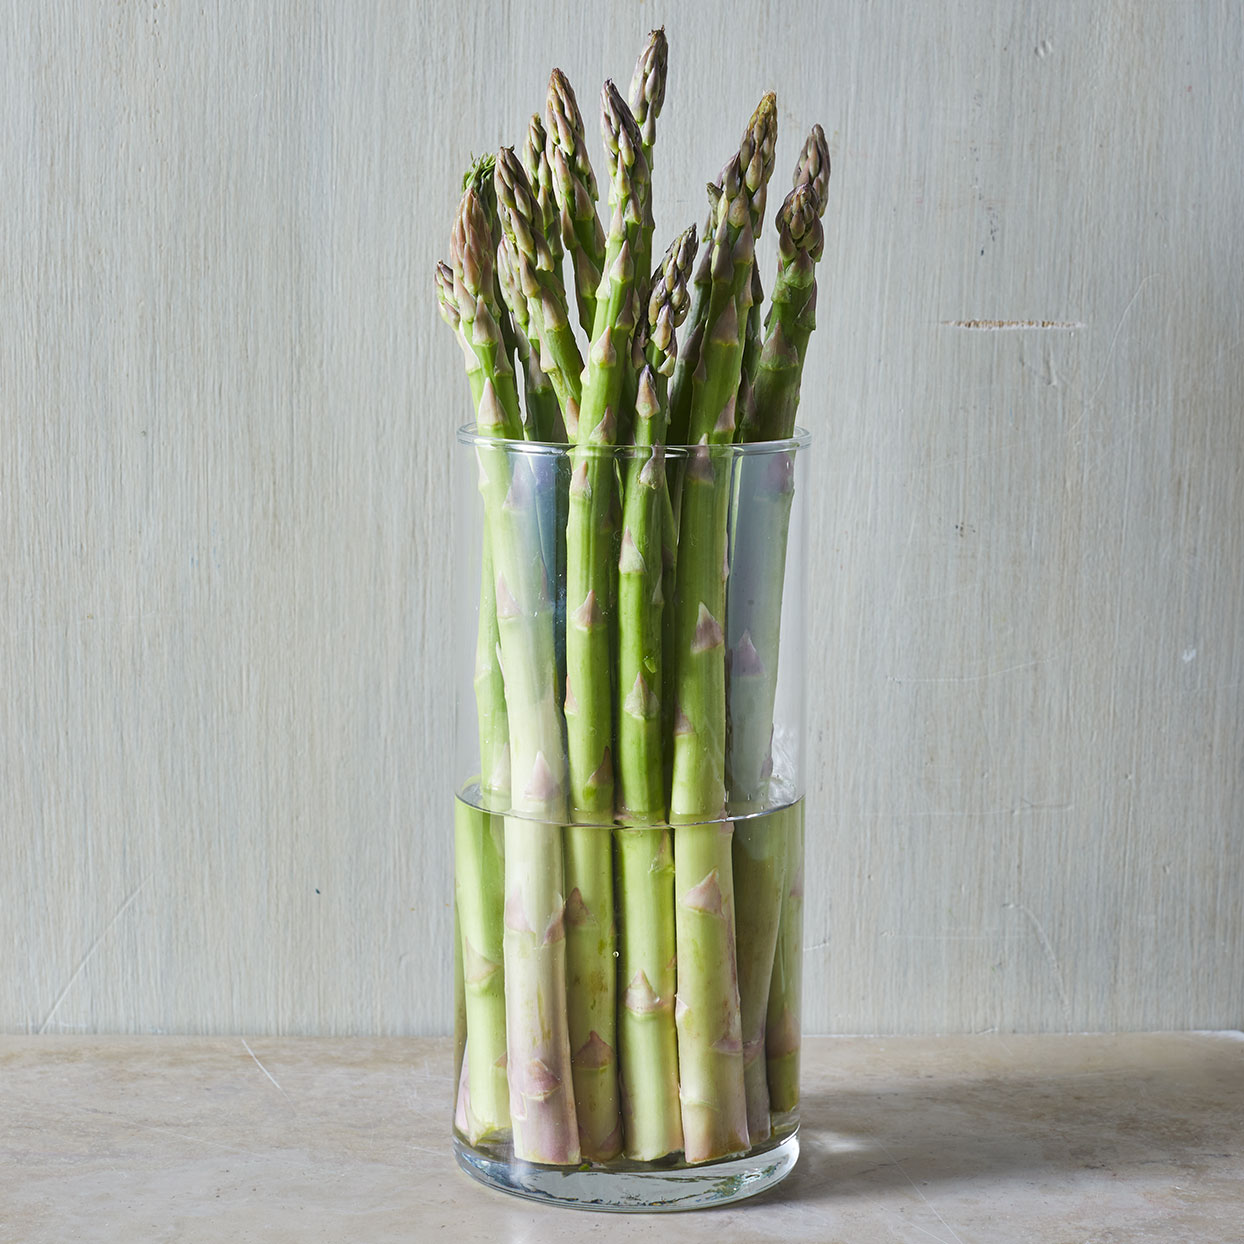 Asparagus-rehydrated-in-a-glass